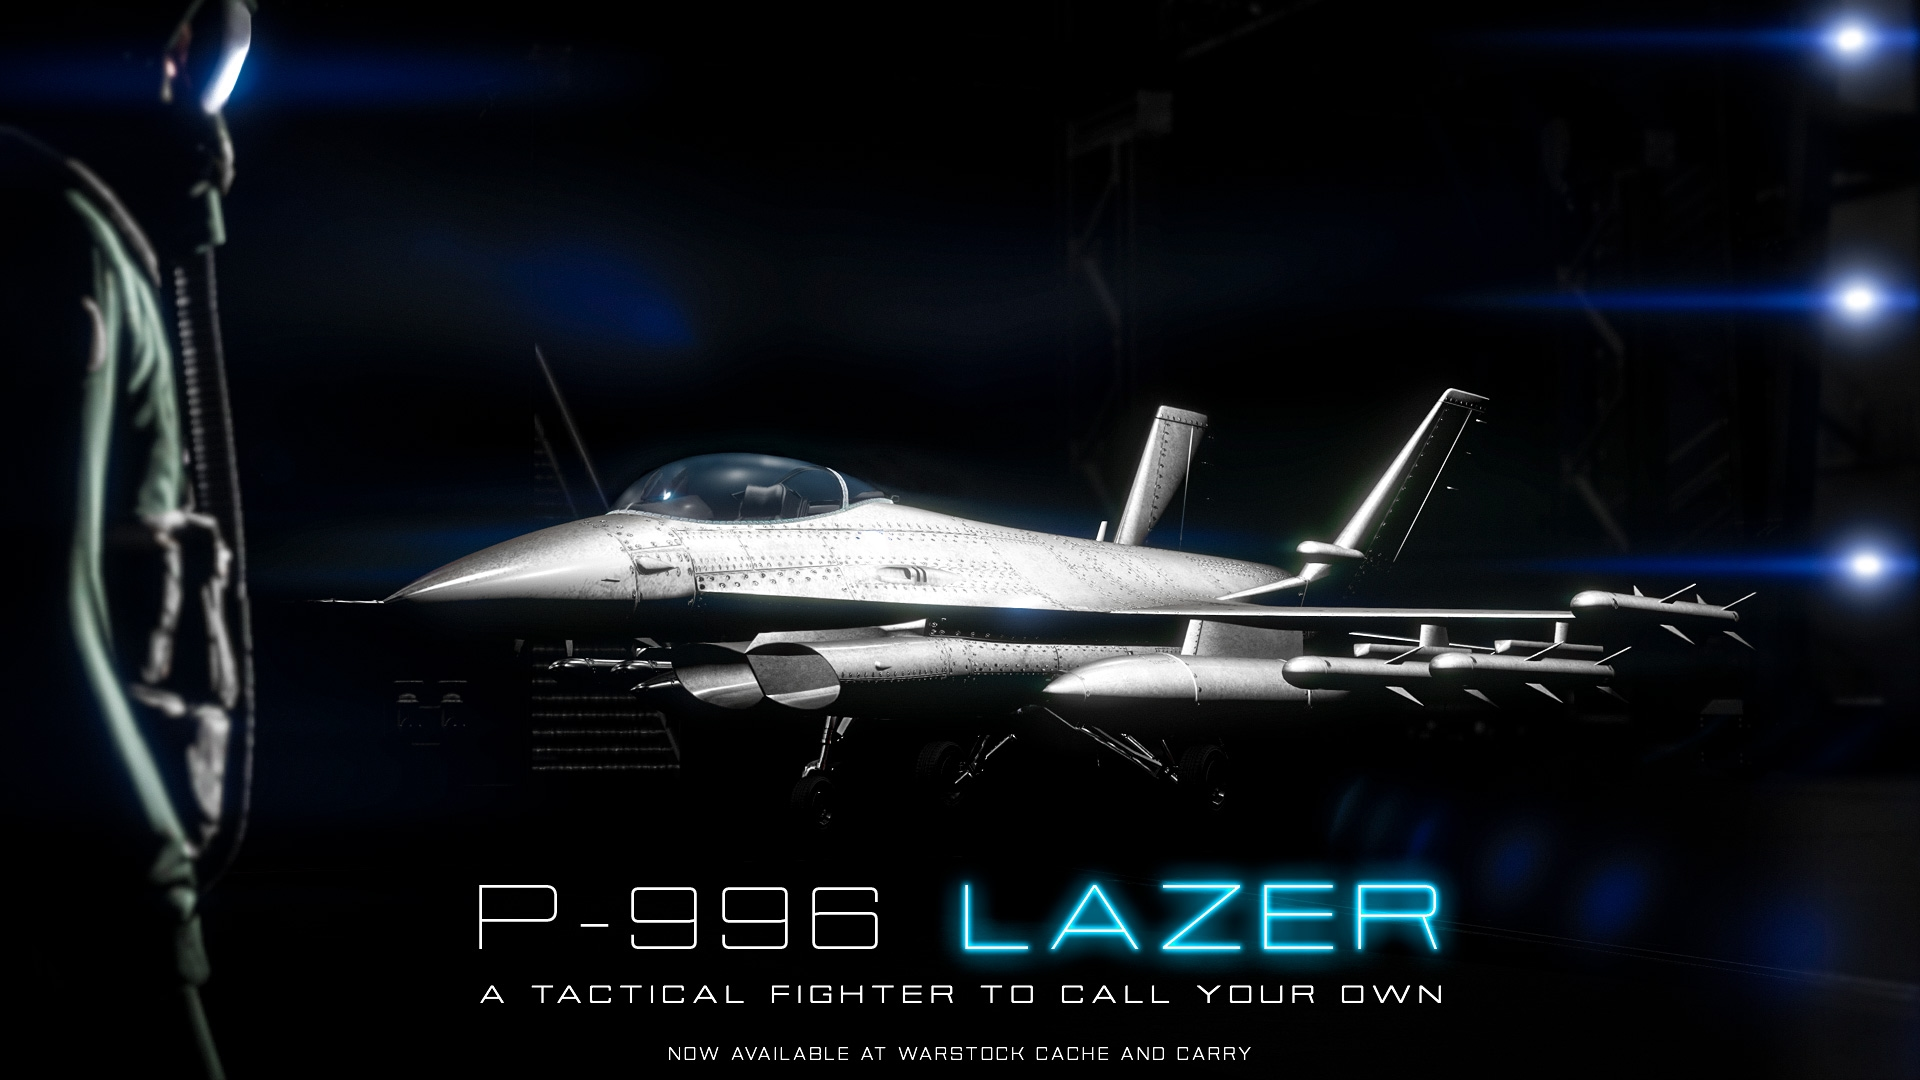 p 996 lazer and new creator tools now available in gta online plus two wee